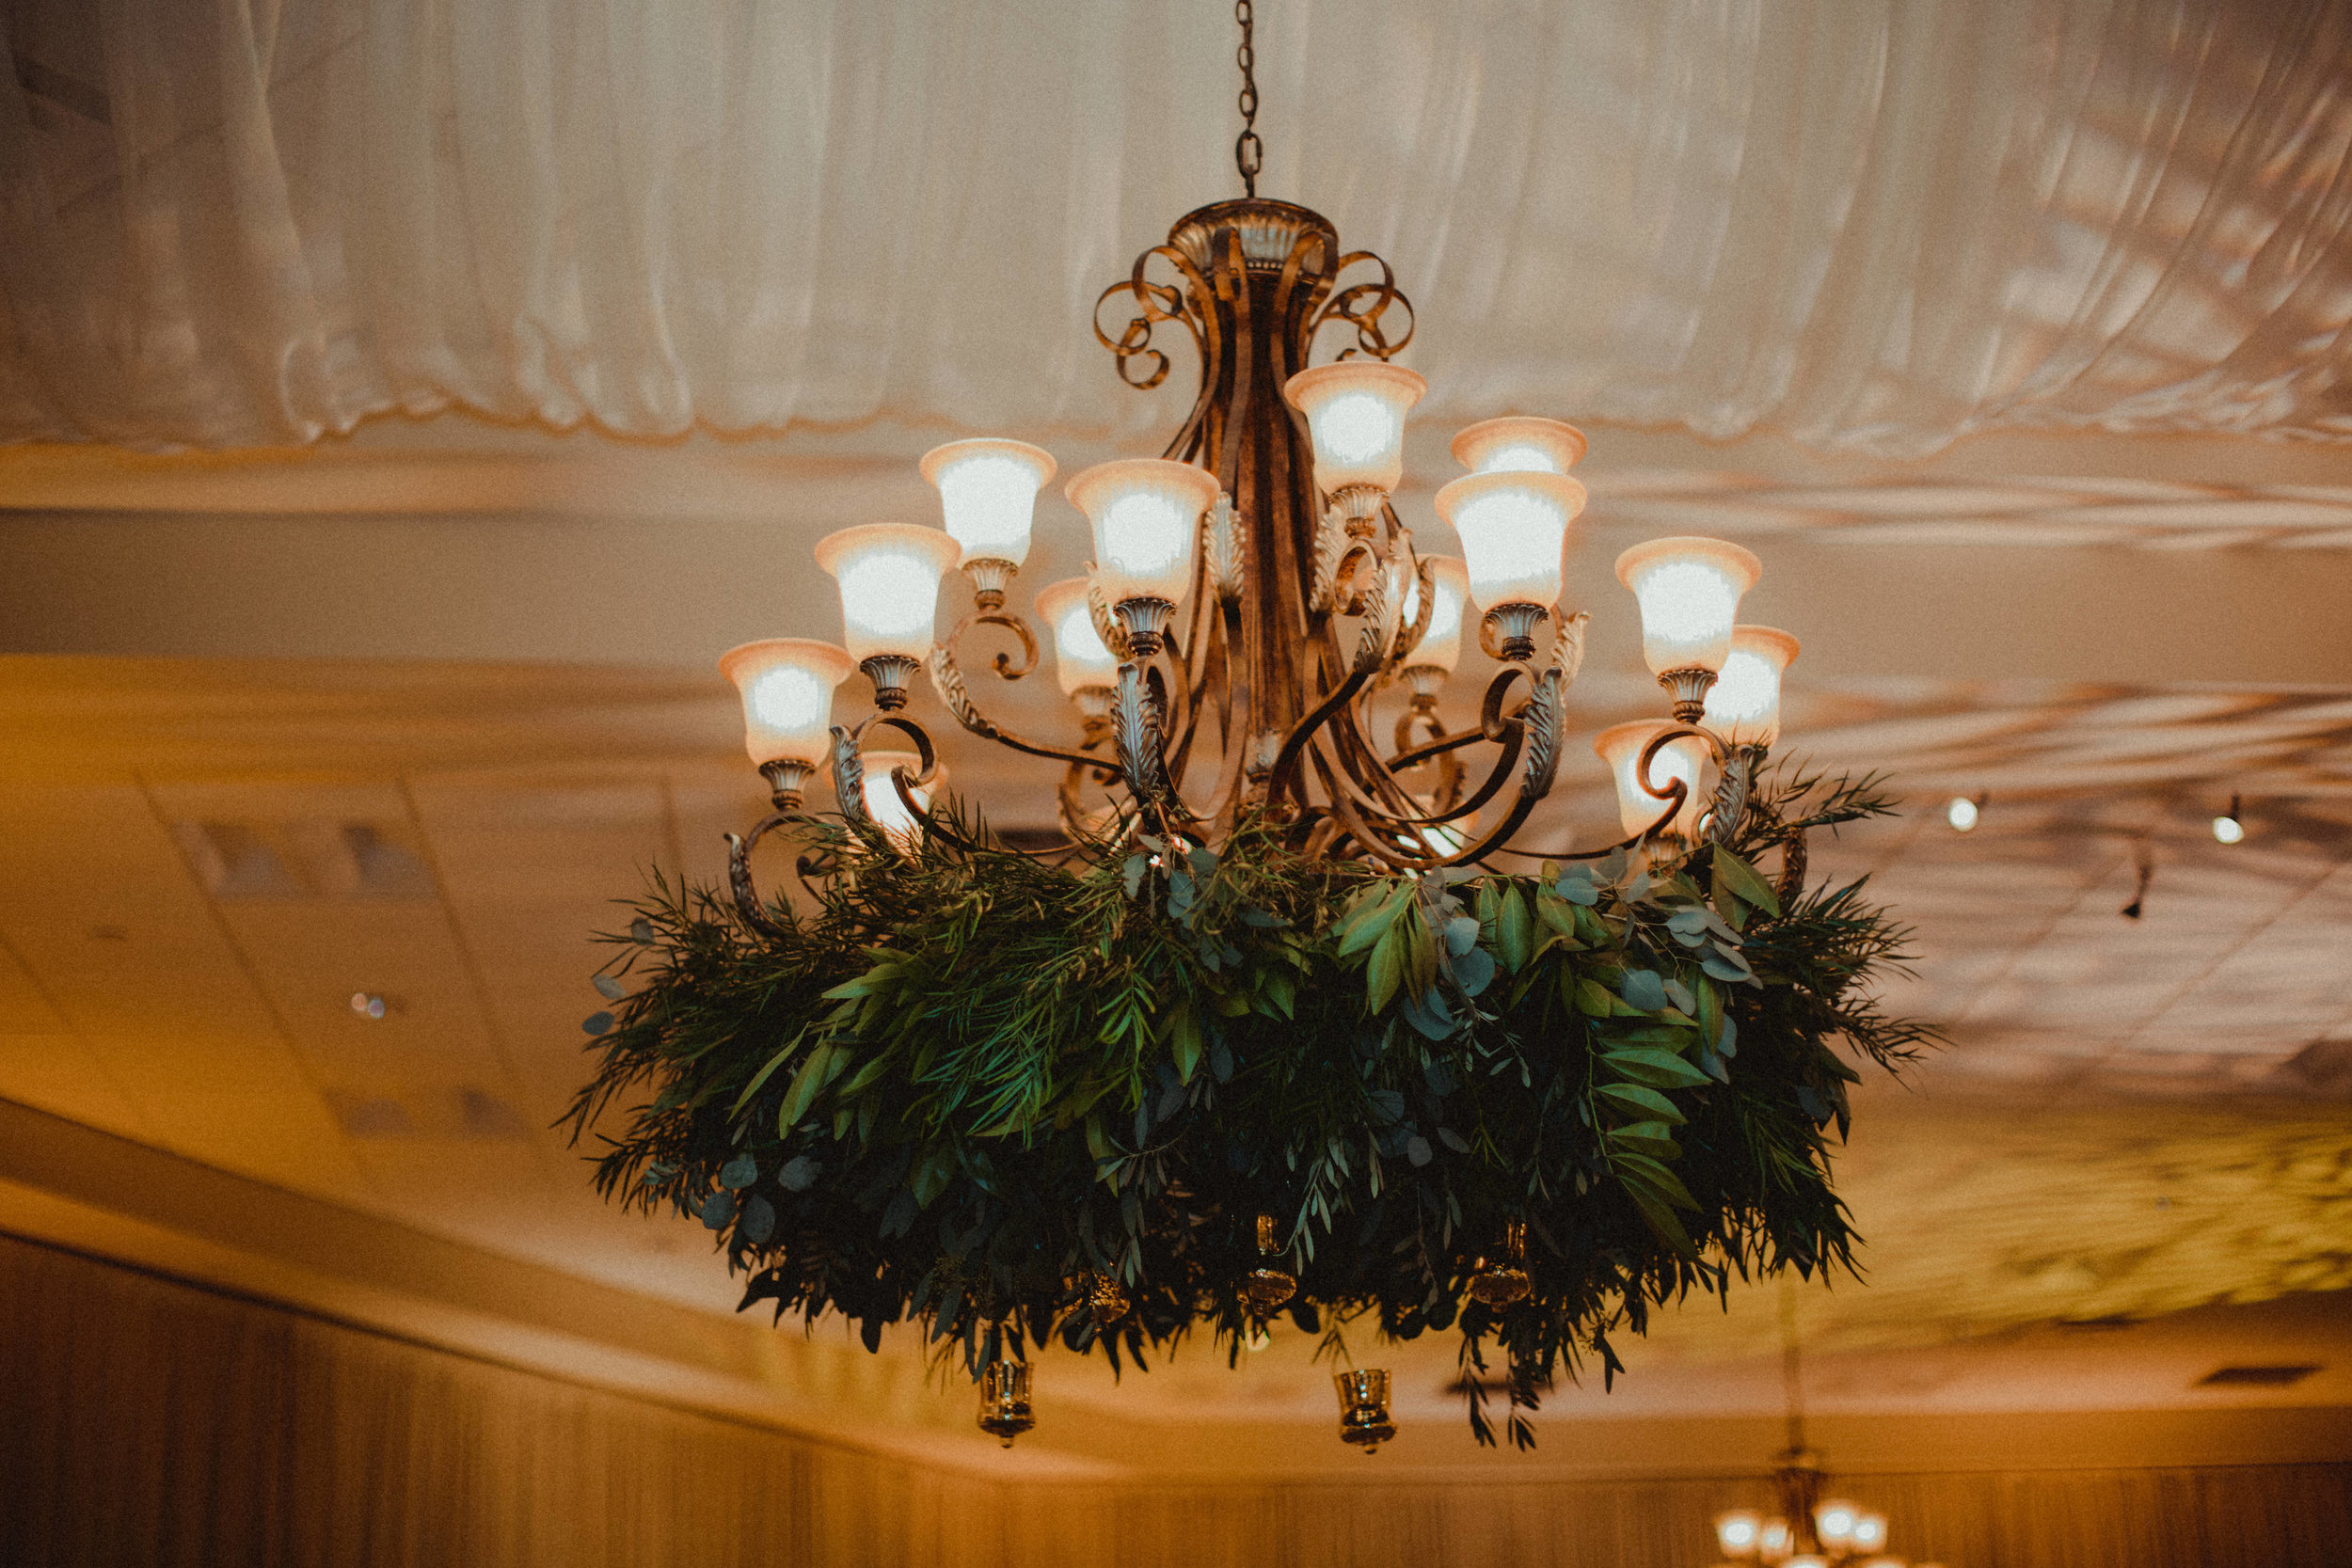 Hanging chandeliers with garland